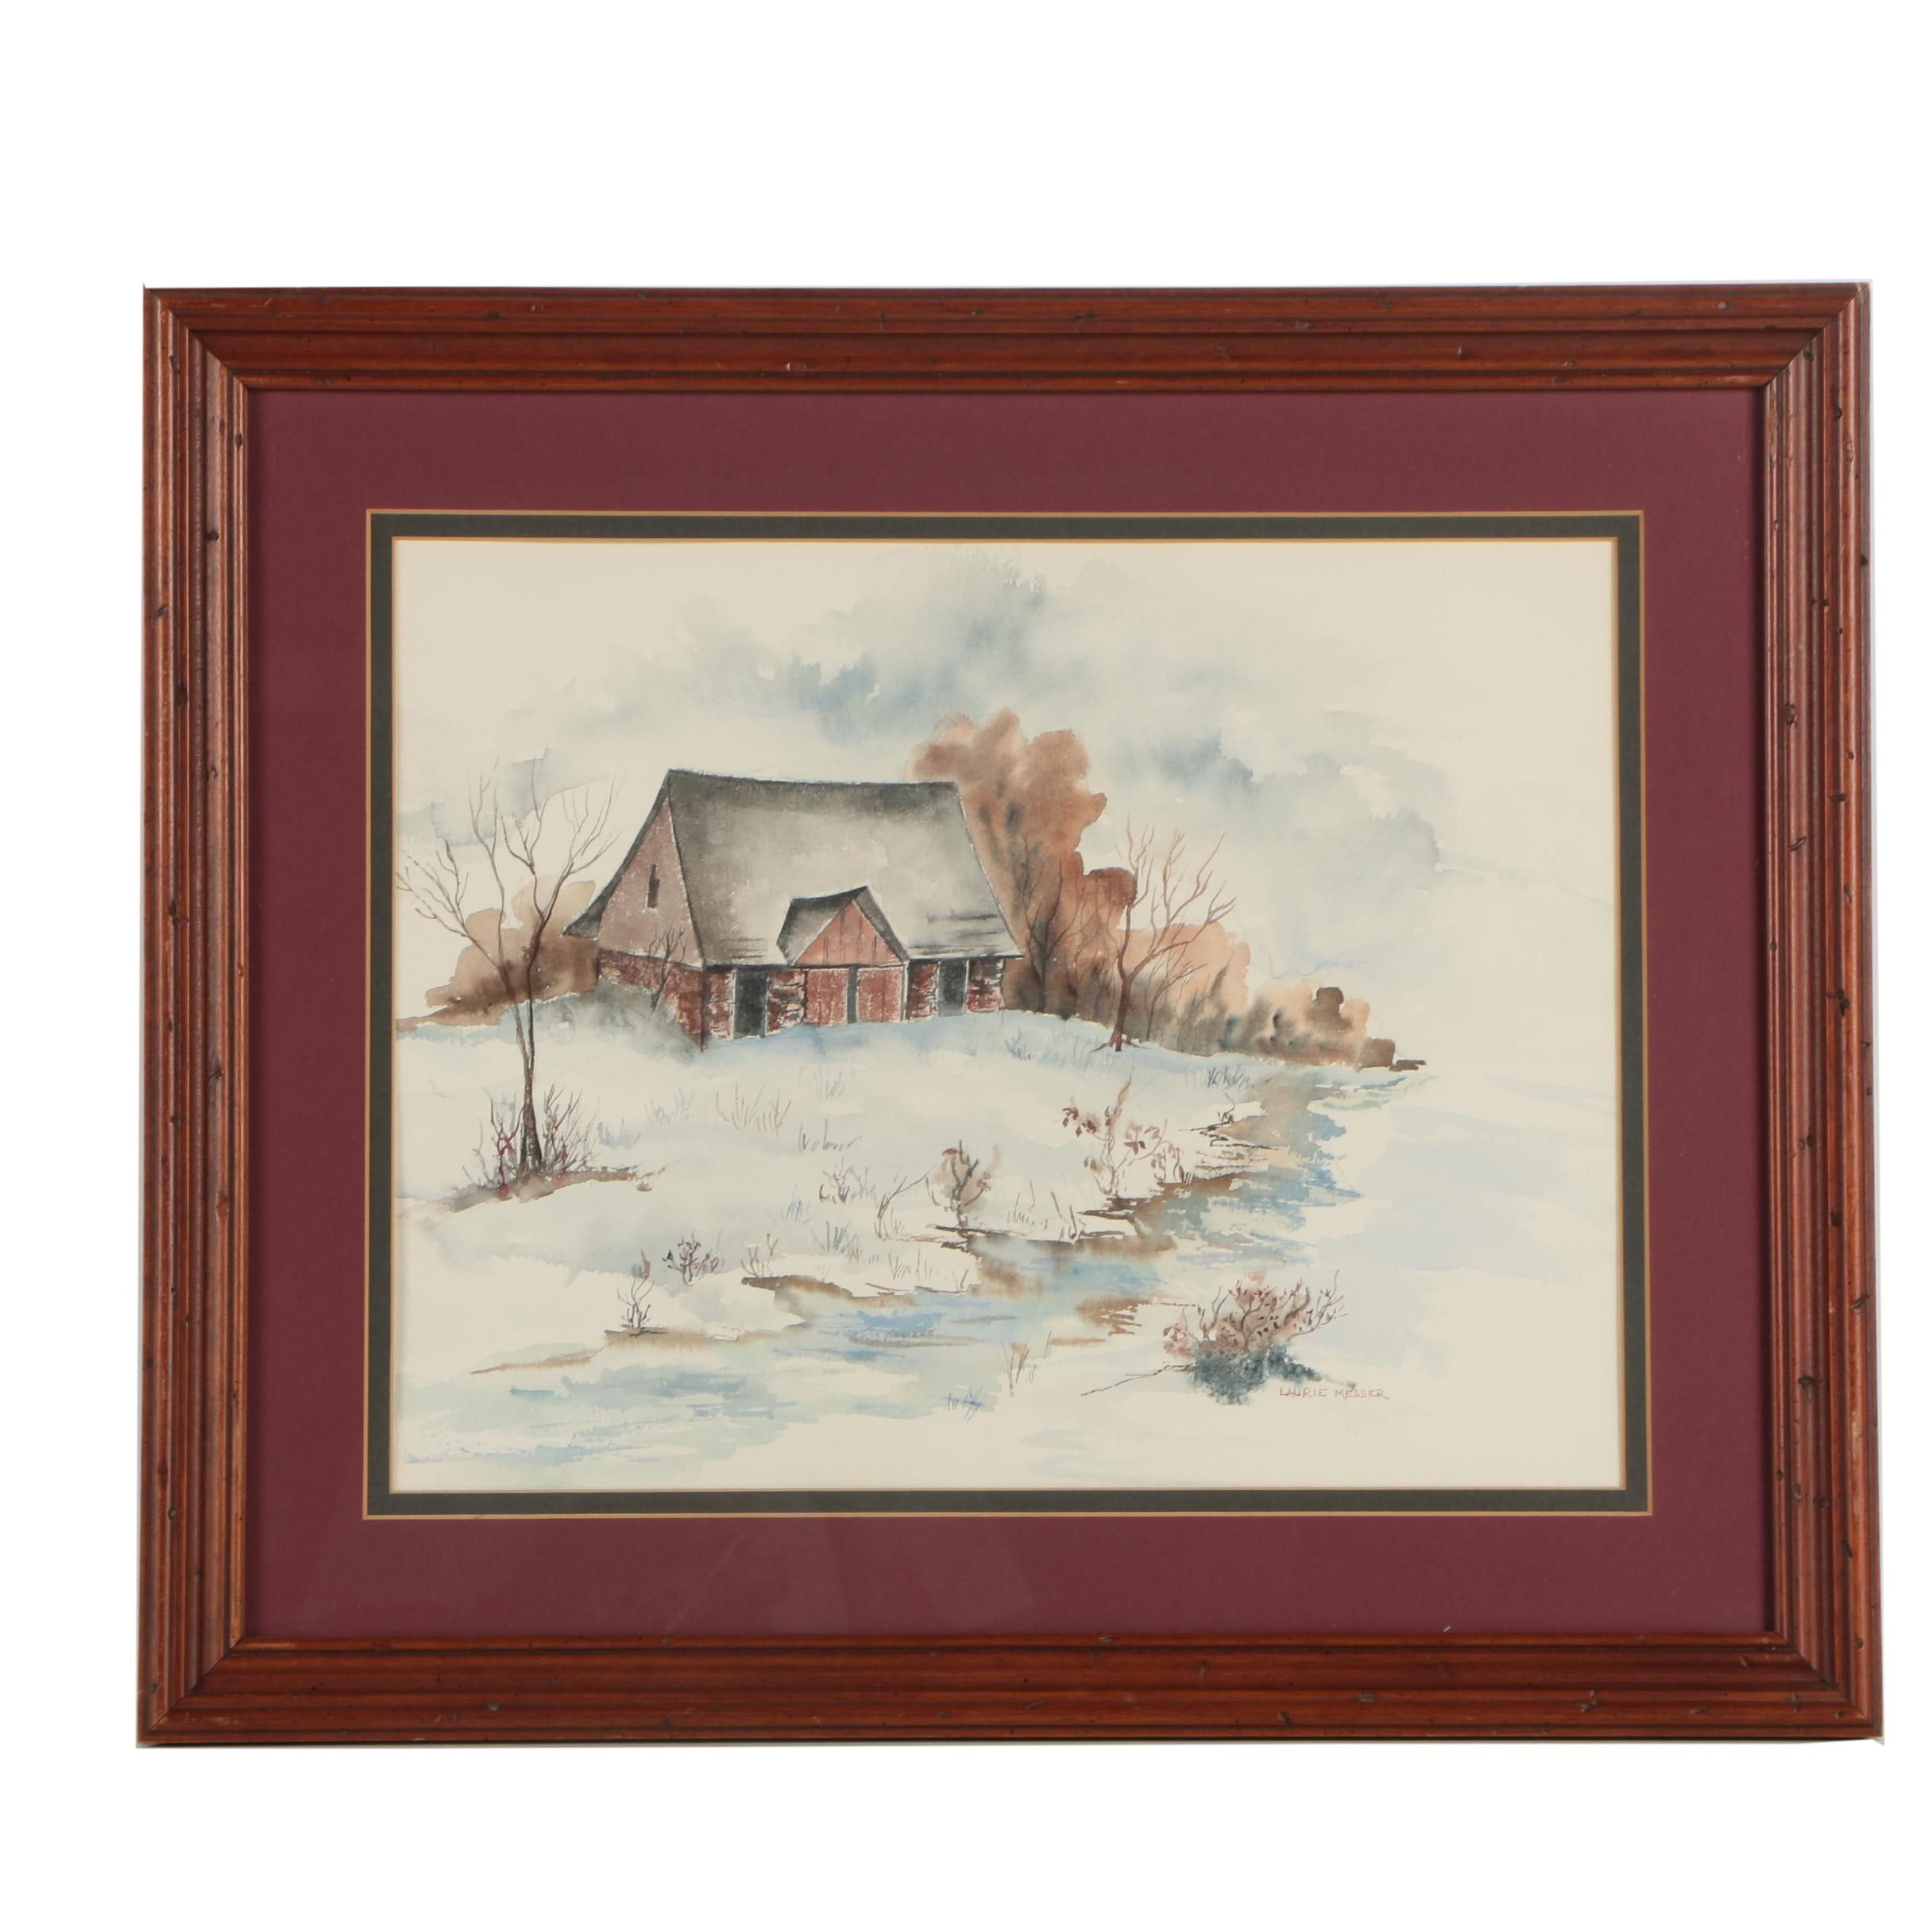 Laurie Messer Signed Watercolor Painting of Barn in Winter